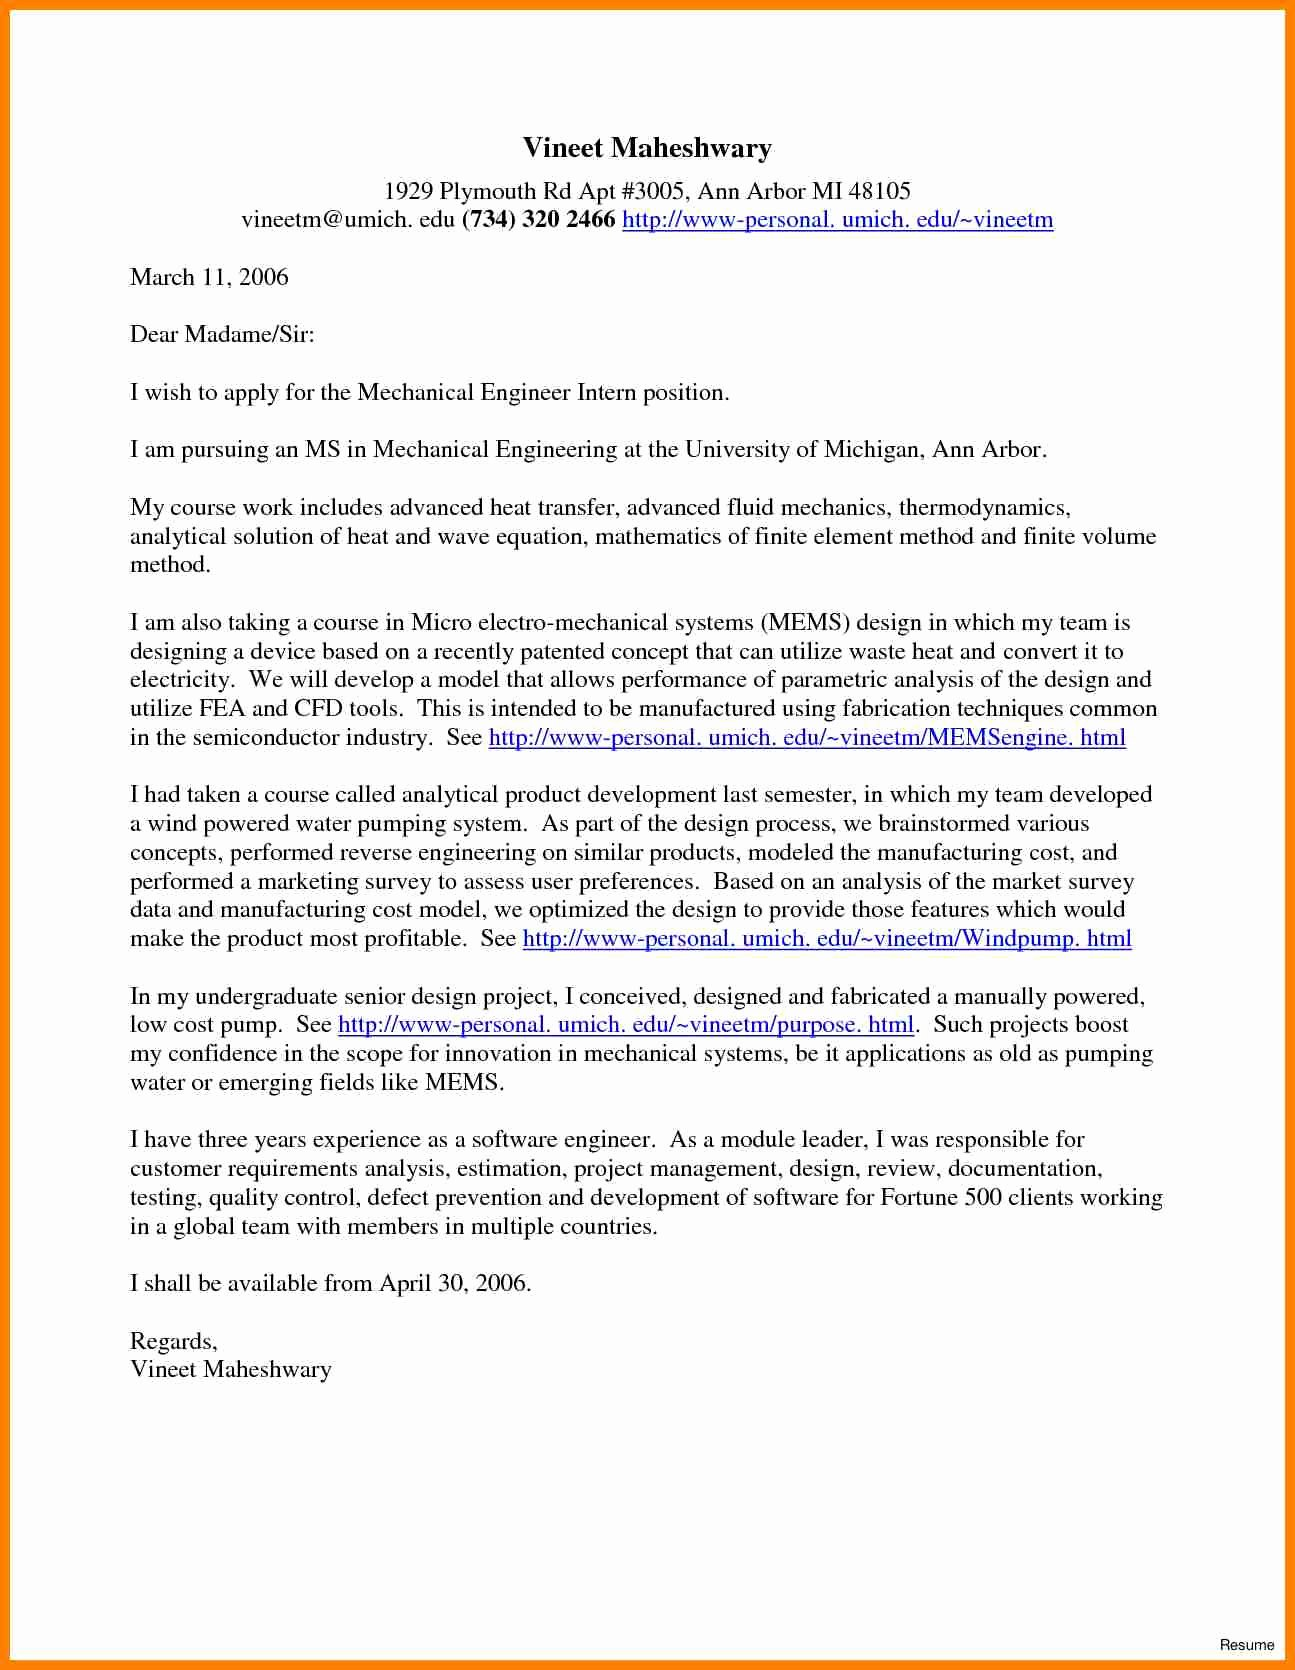 Engineering Internship Cover Letter New 5 Cover Letter Examples for Engineering Internships